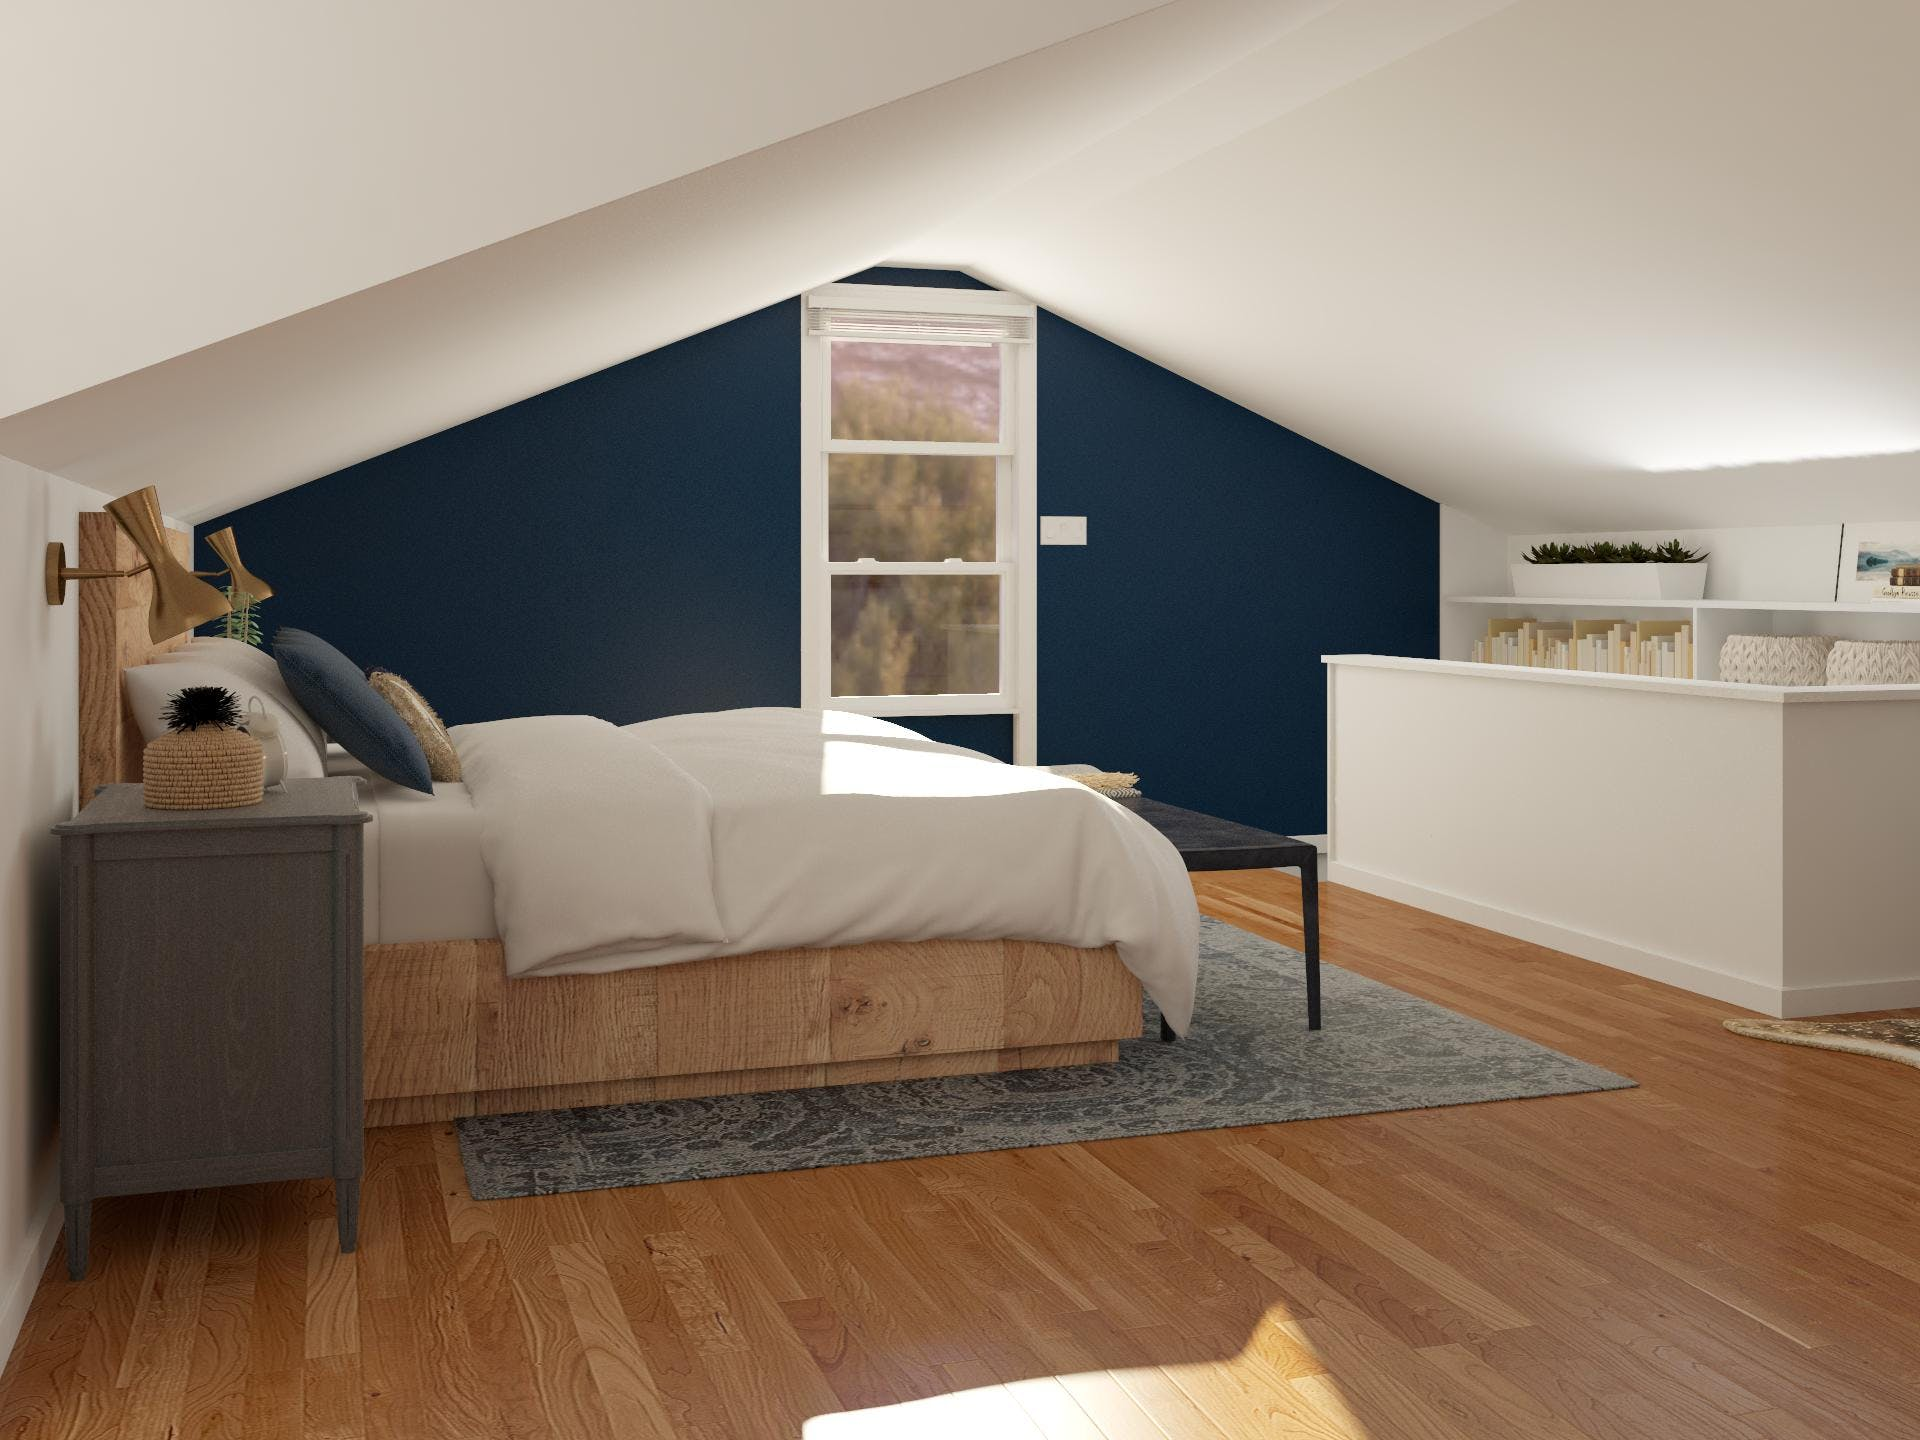 Attic Space Bedroom with Rustic Style